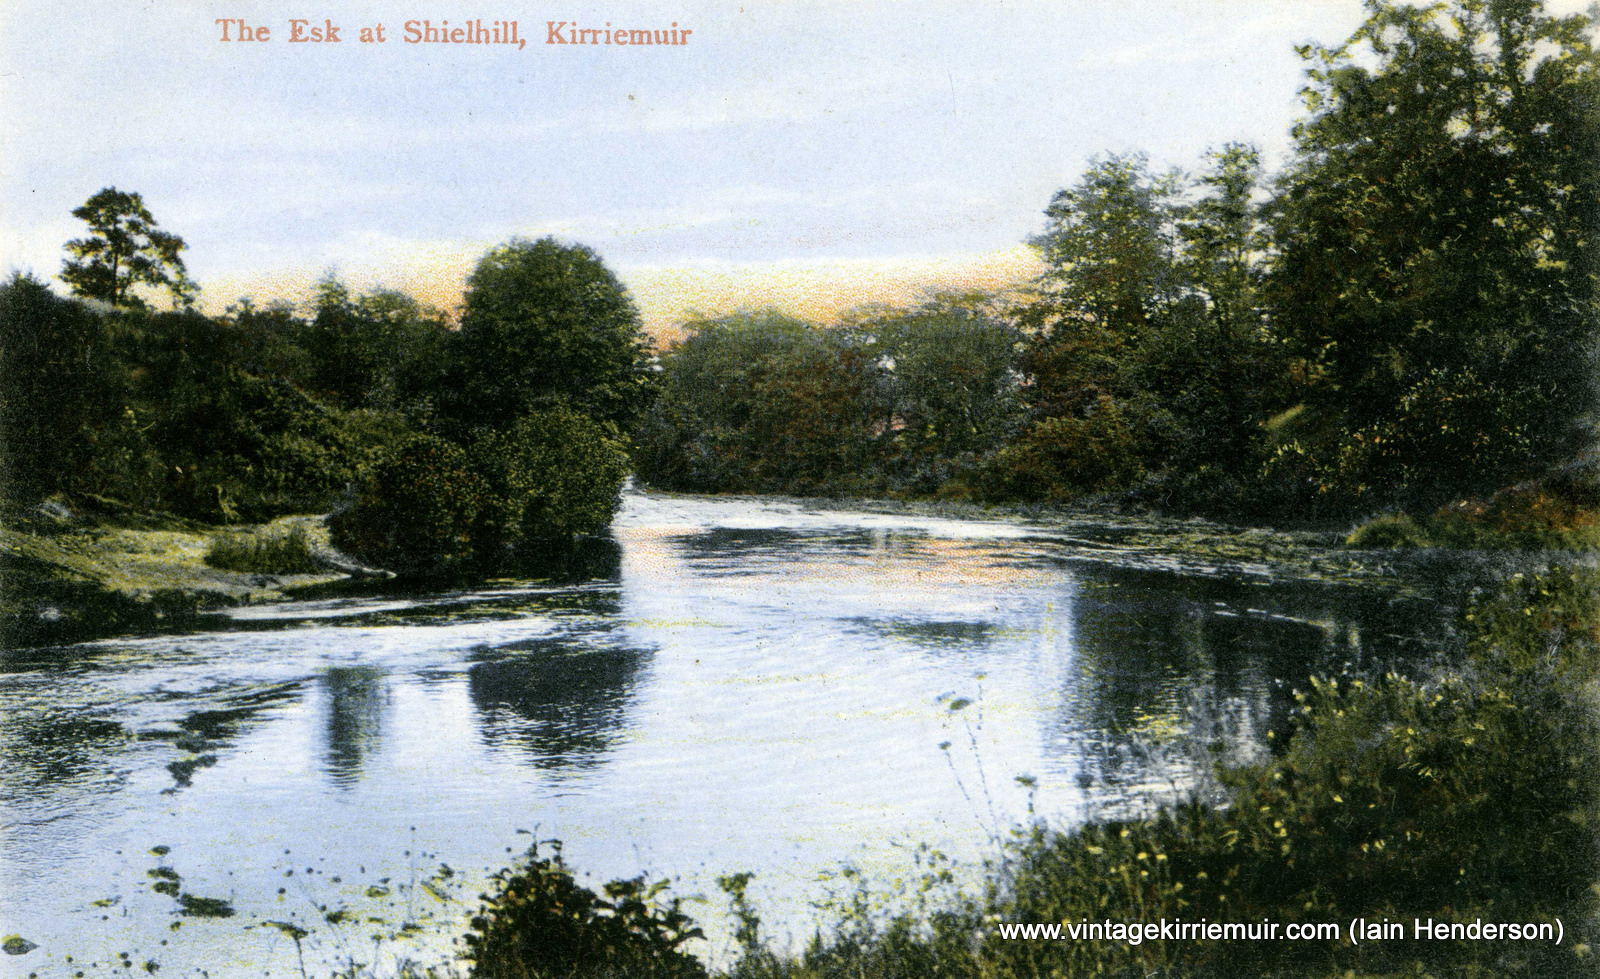 The Esk at Shielhill